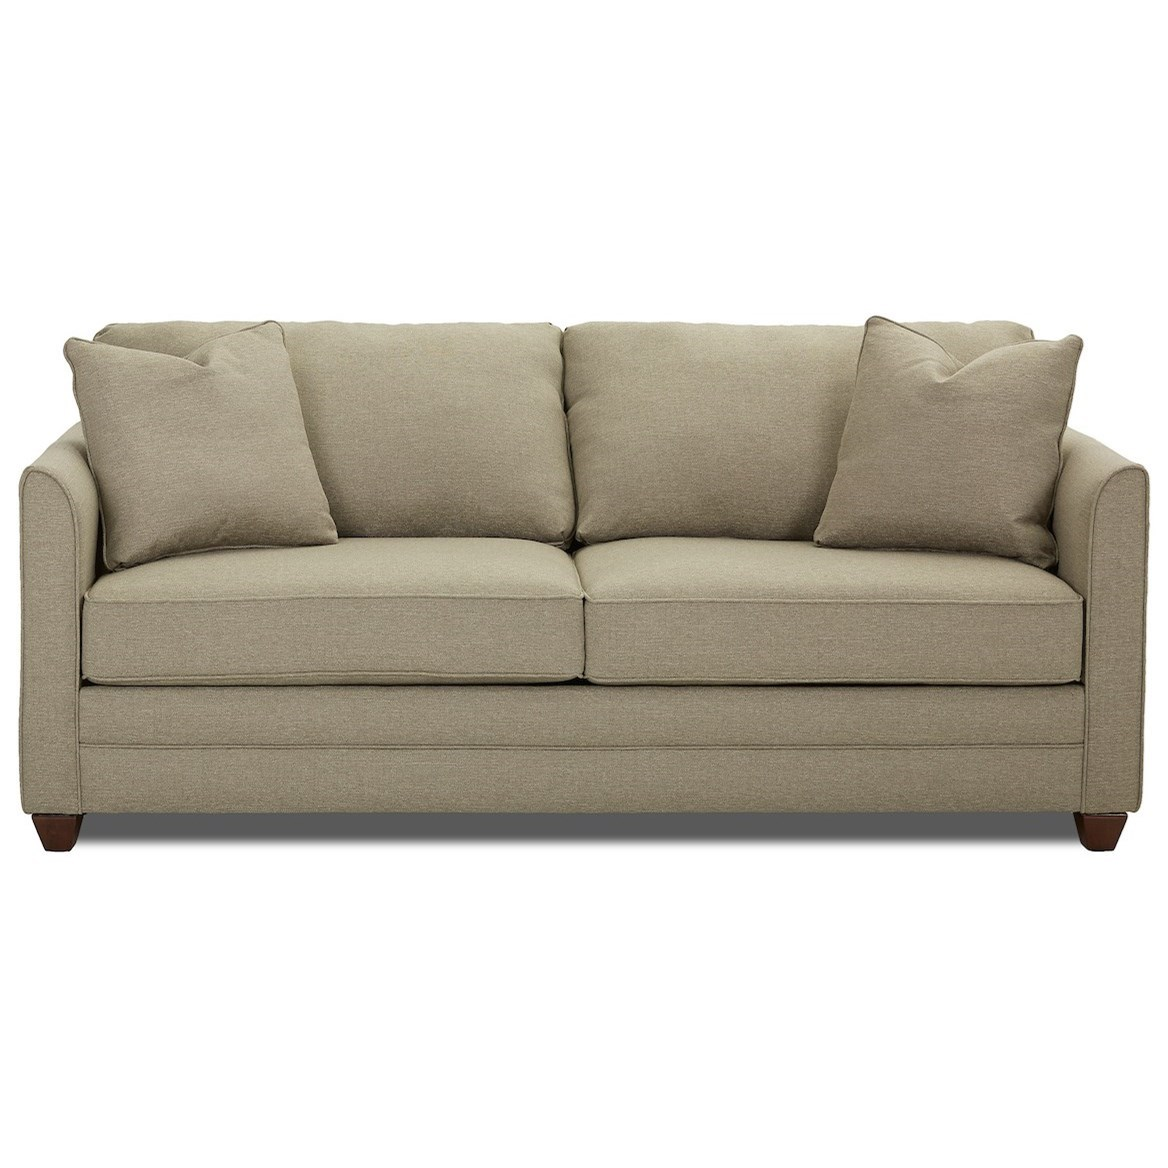 Tilly Sofa by Klaussner at Johnny Janosik